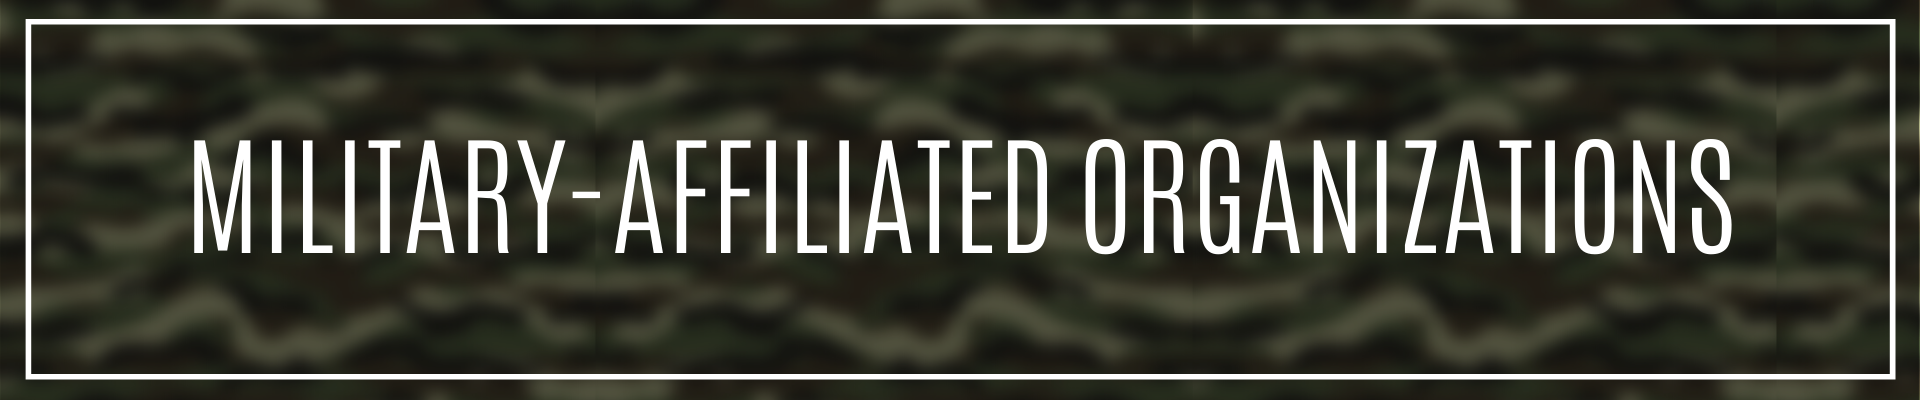 Military Affiliated Organizations Page Header